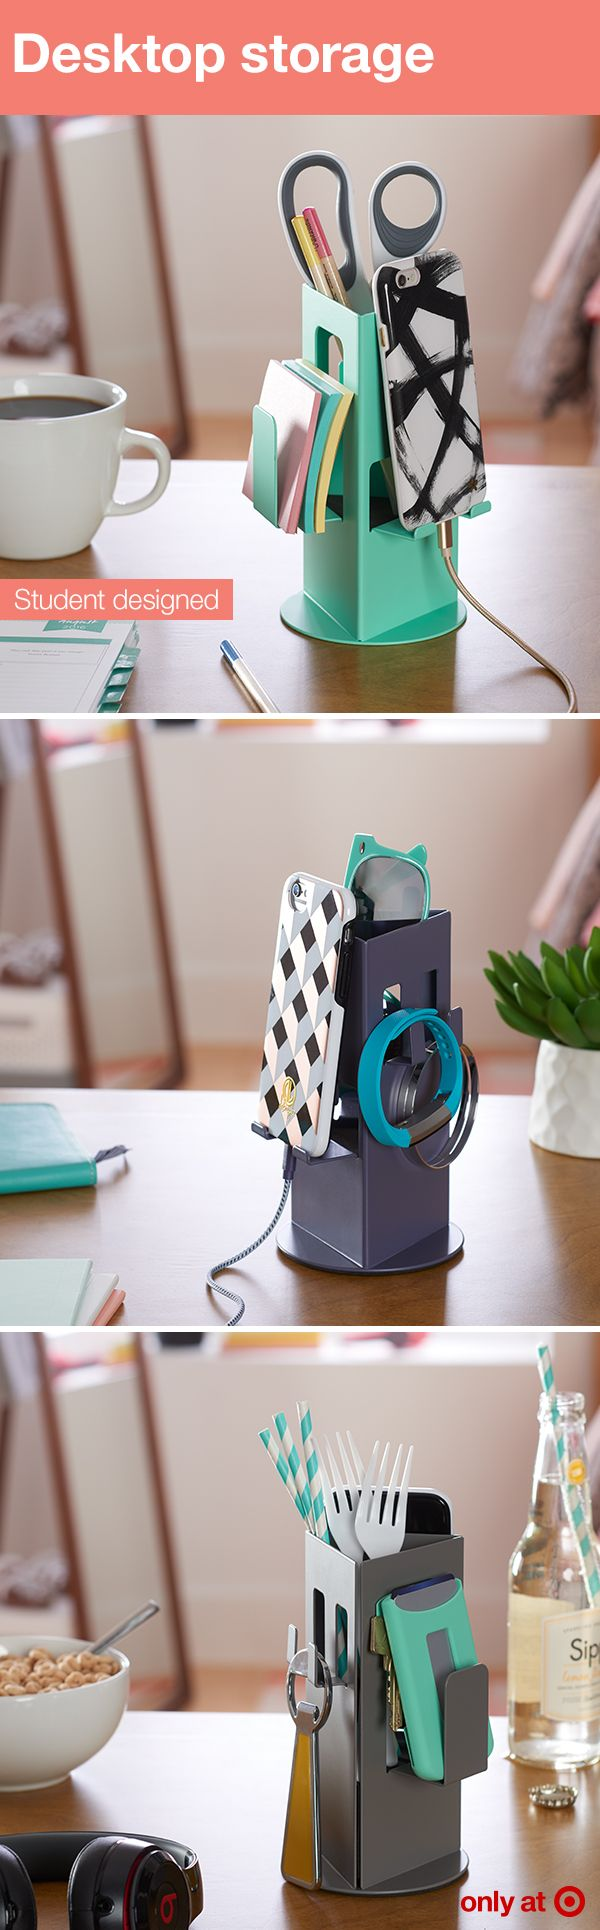 Created by students for students, this desktop organizer from Loft by Umbra will help you stay organized and clutter-free. This little gem not only holds utensils, school supplies, personal items and more in their place, it includes charging holes and cord space for your smart phone. It comes in a variety of colors — turquoise, charcoal, indigo and orange.